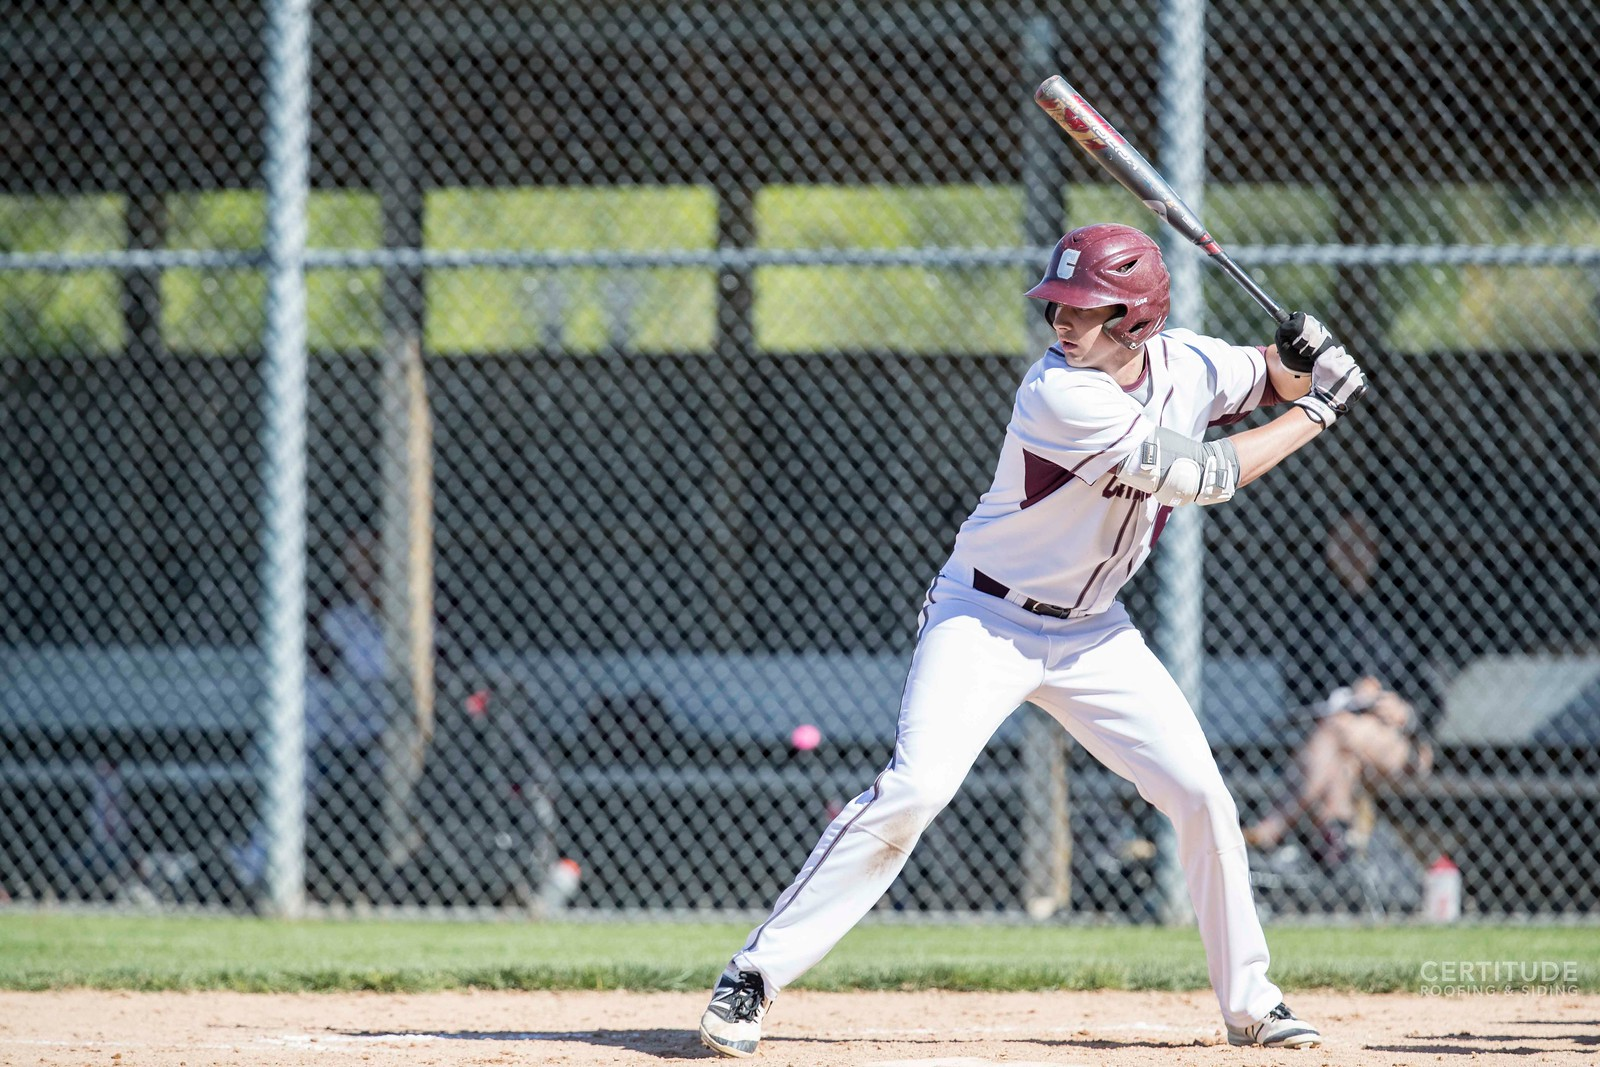 Lower_Merion_BASEBALL_vs_Conestoga-208